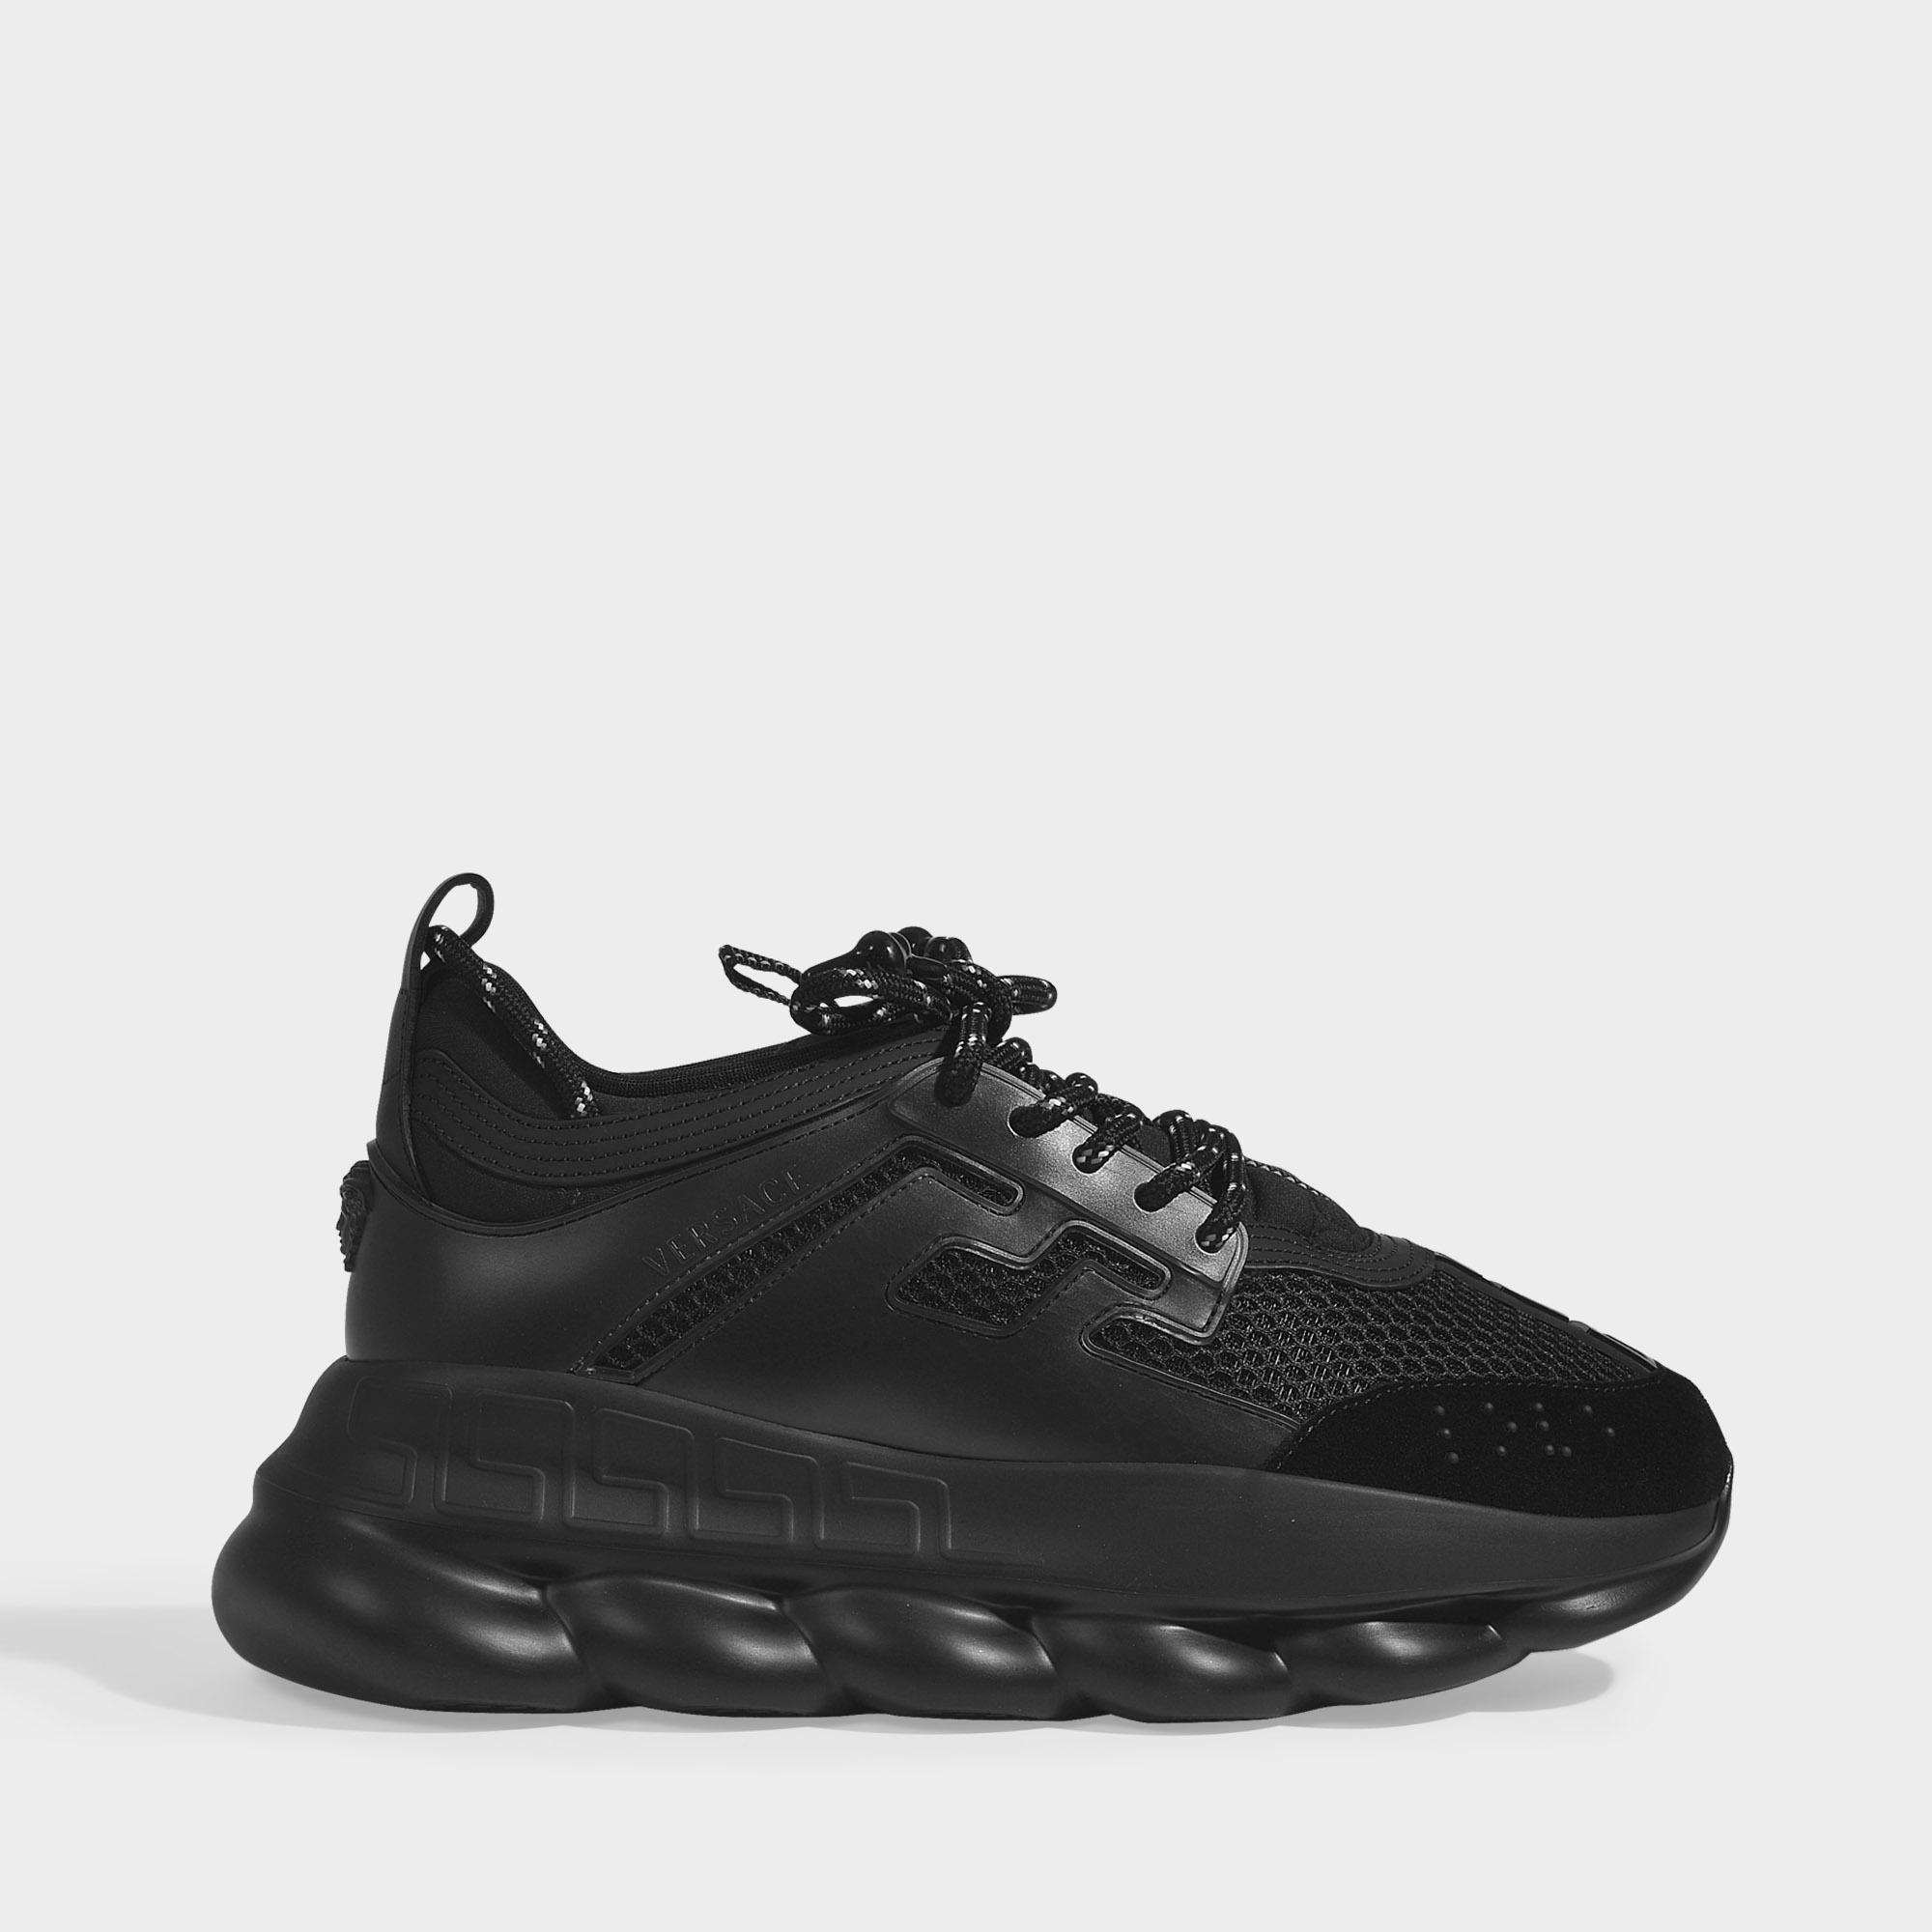 e659fe2ee1 versace-Black-Sports-Oversized-Chain-Sneakers-In-Black-Canvas.jpeg